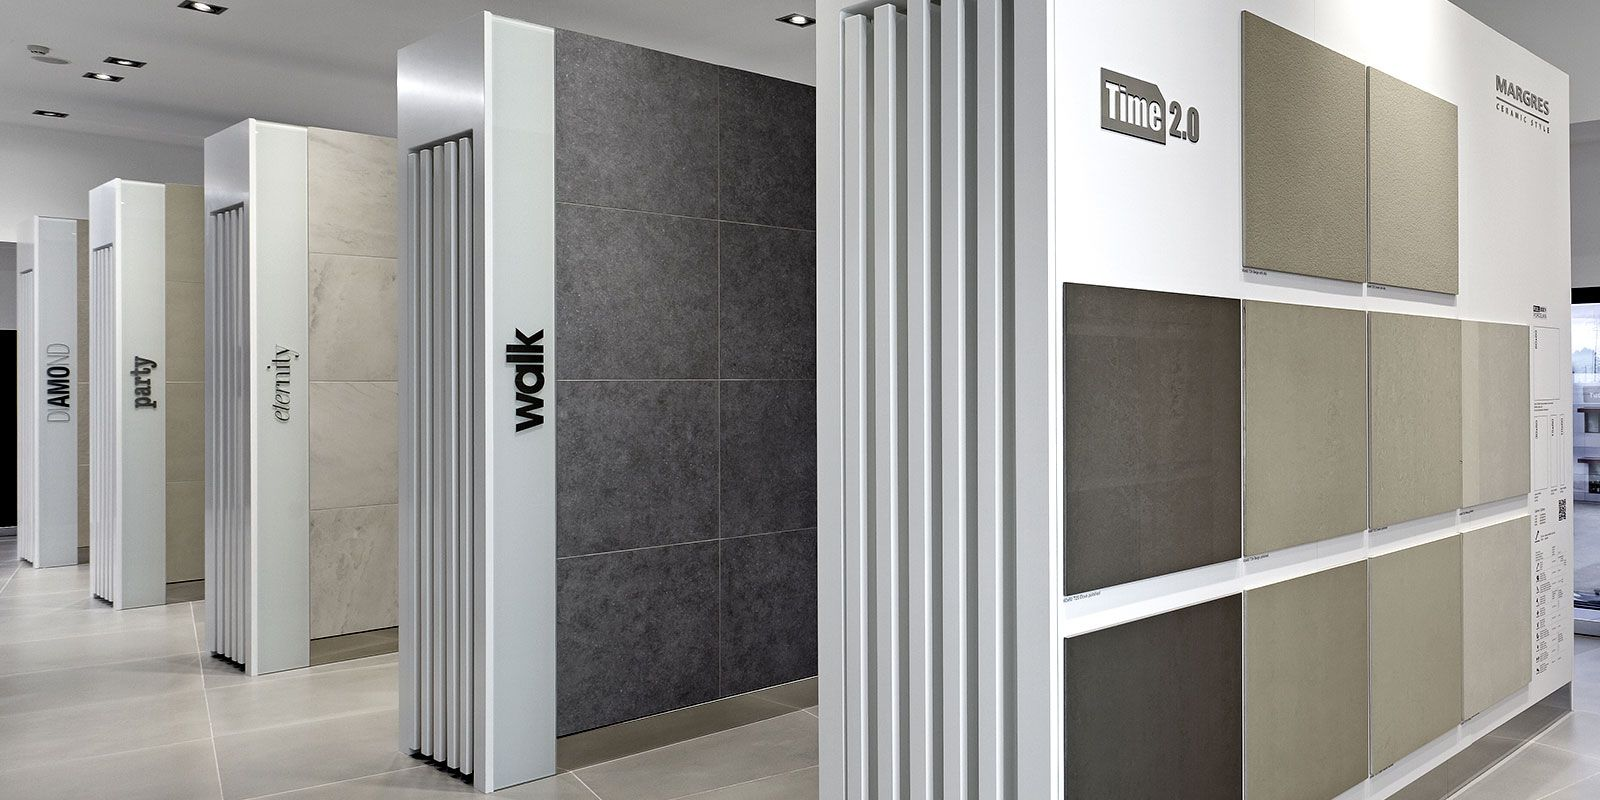 Margres tile showroom by archilinea project shwrm reno margres tile showroom by archilinea rubansaba